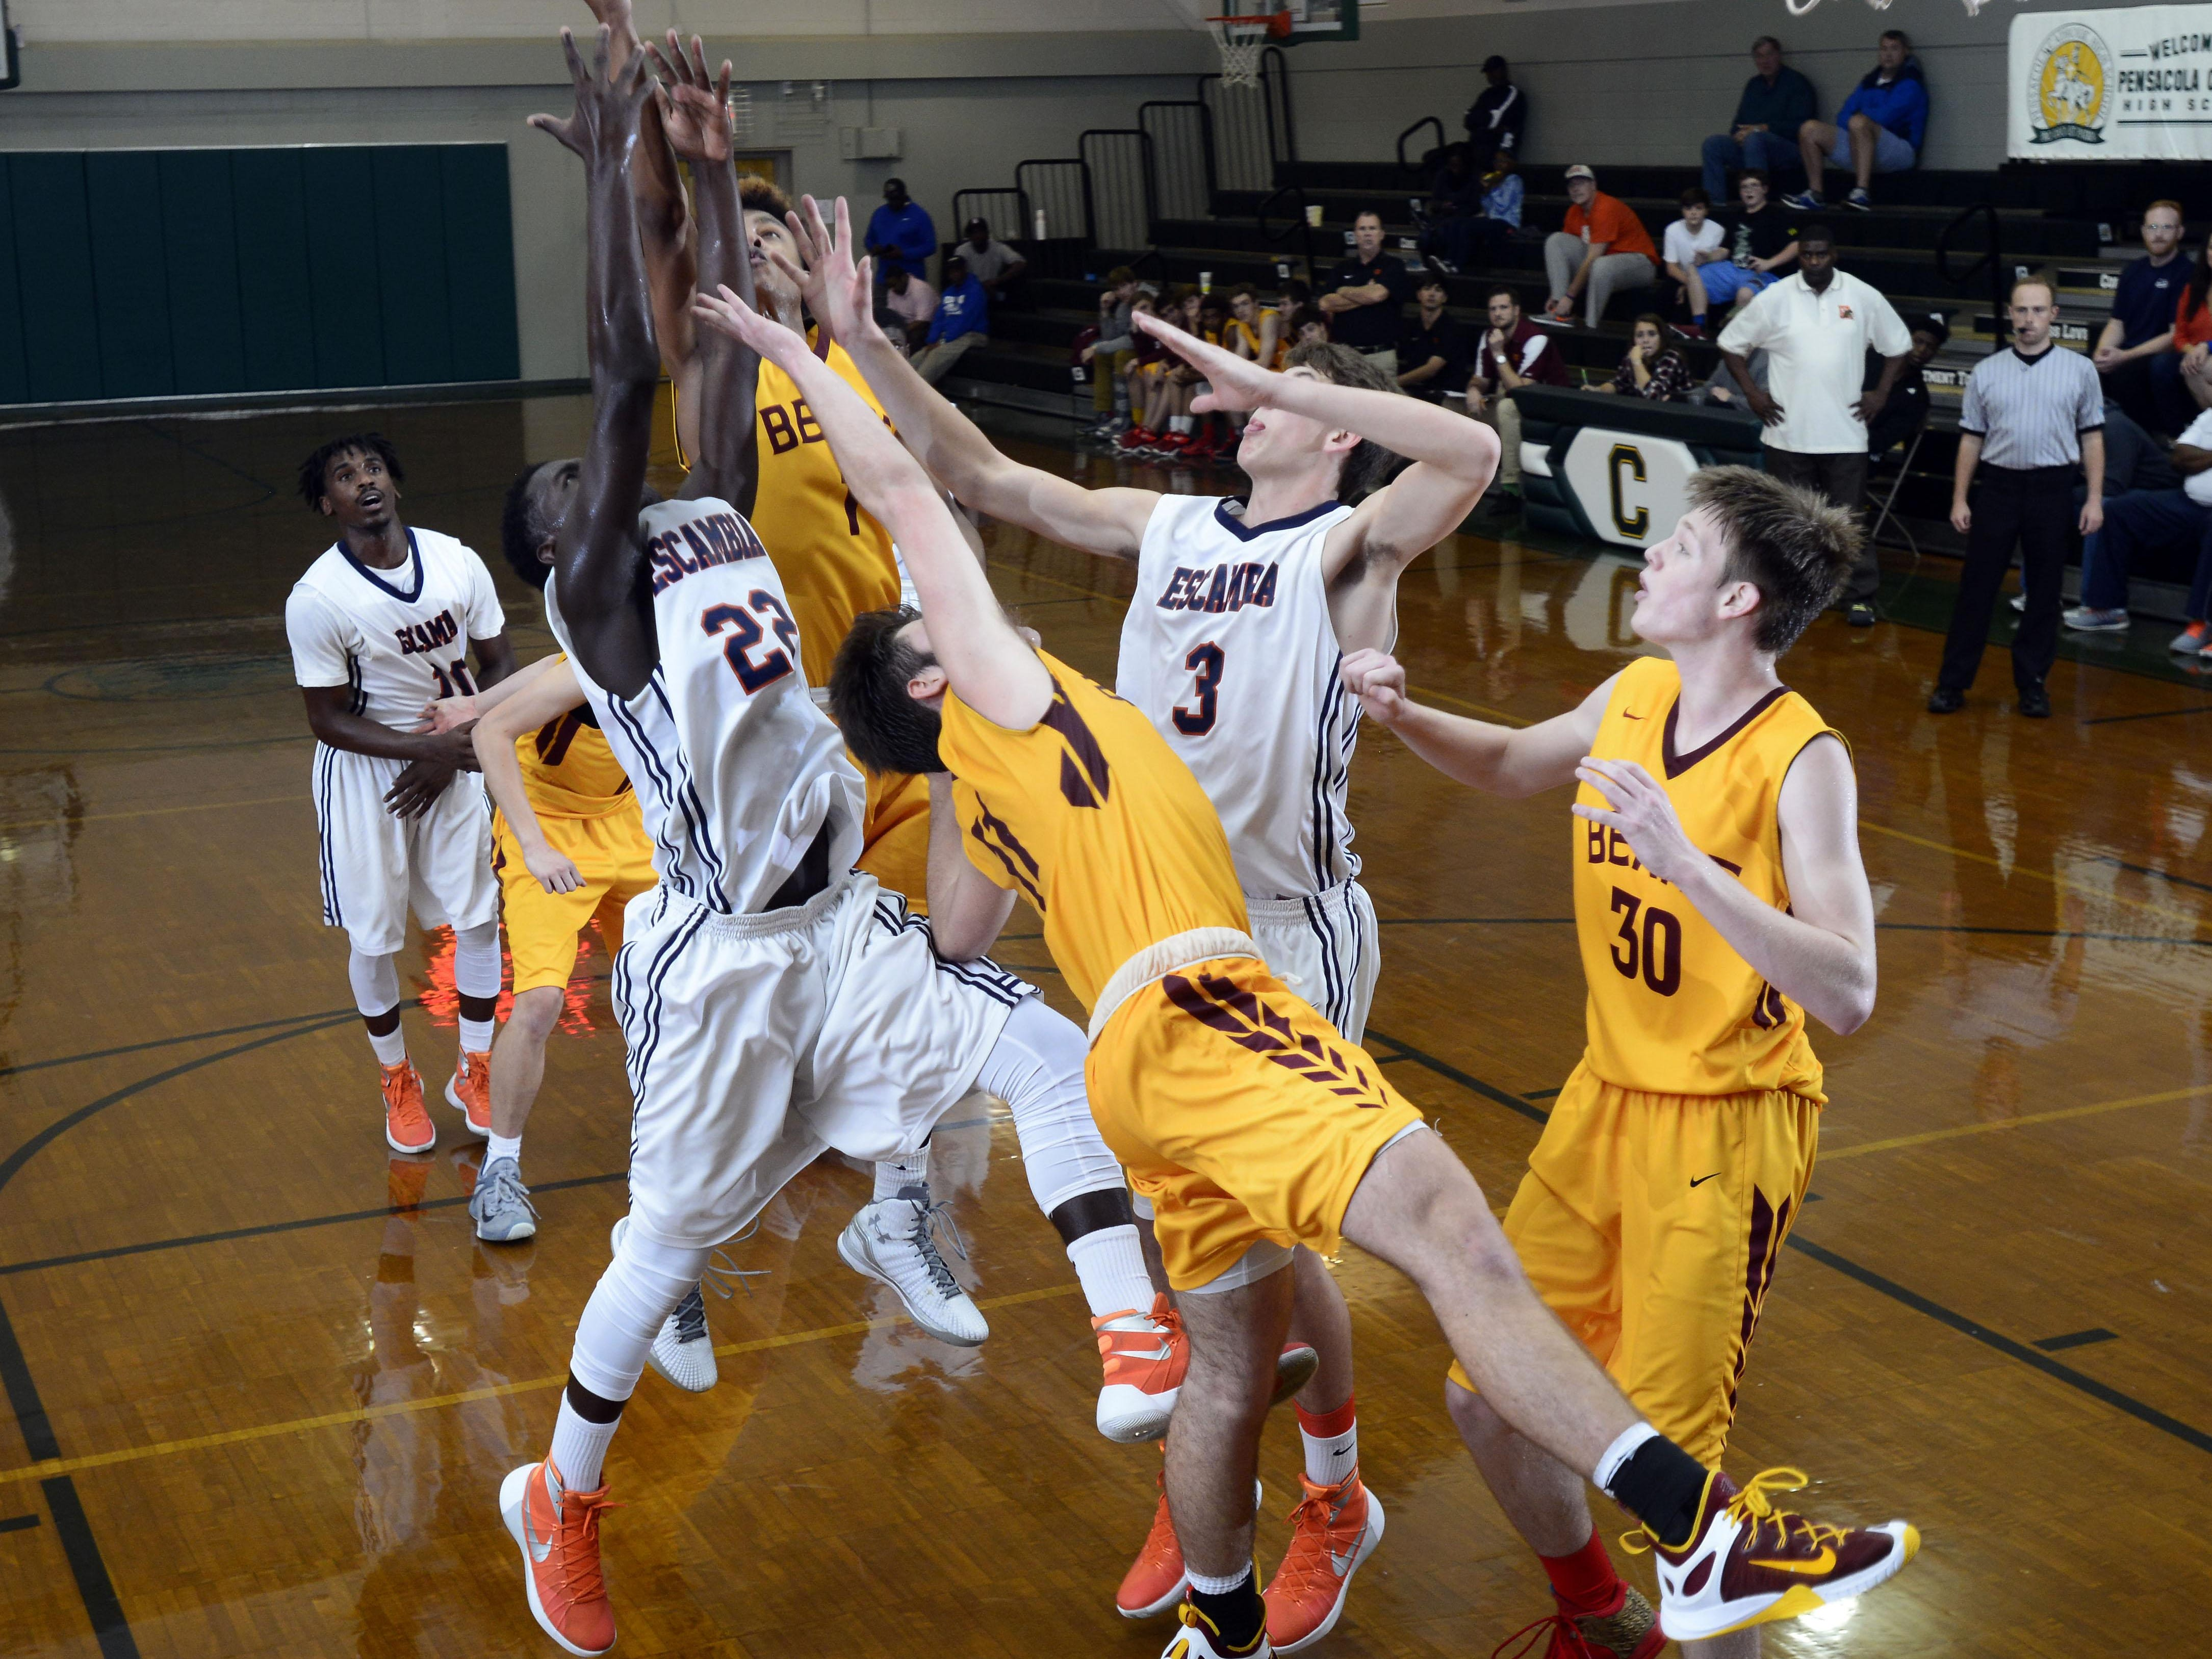 Escambia High School and Holy Innocents Episcopal players scramble for a rebound Wednesday during Catholic High School's fourth annaual Crusader Classic basketball tournament. Escambia fell to Holy Innocents 45-55 to take second place in the tournament.